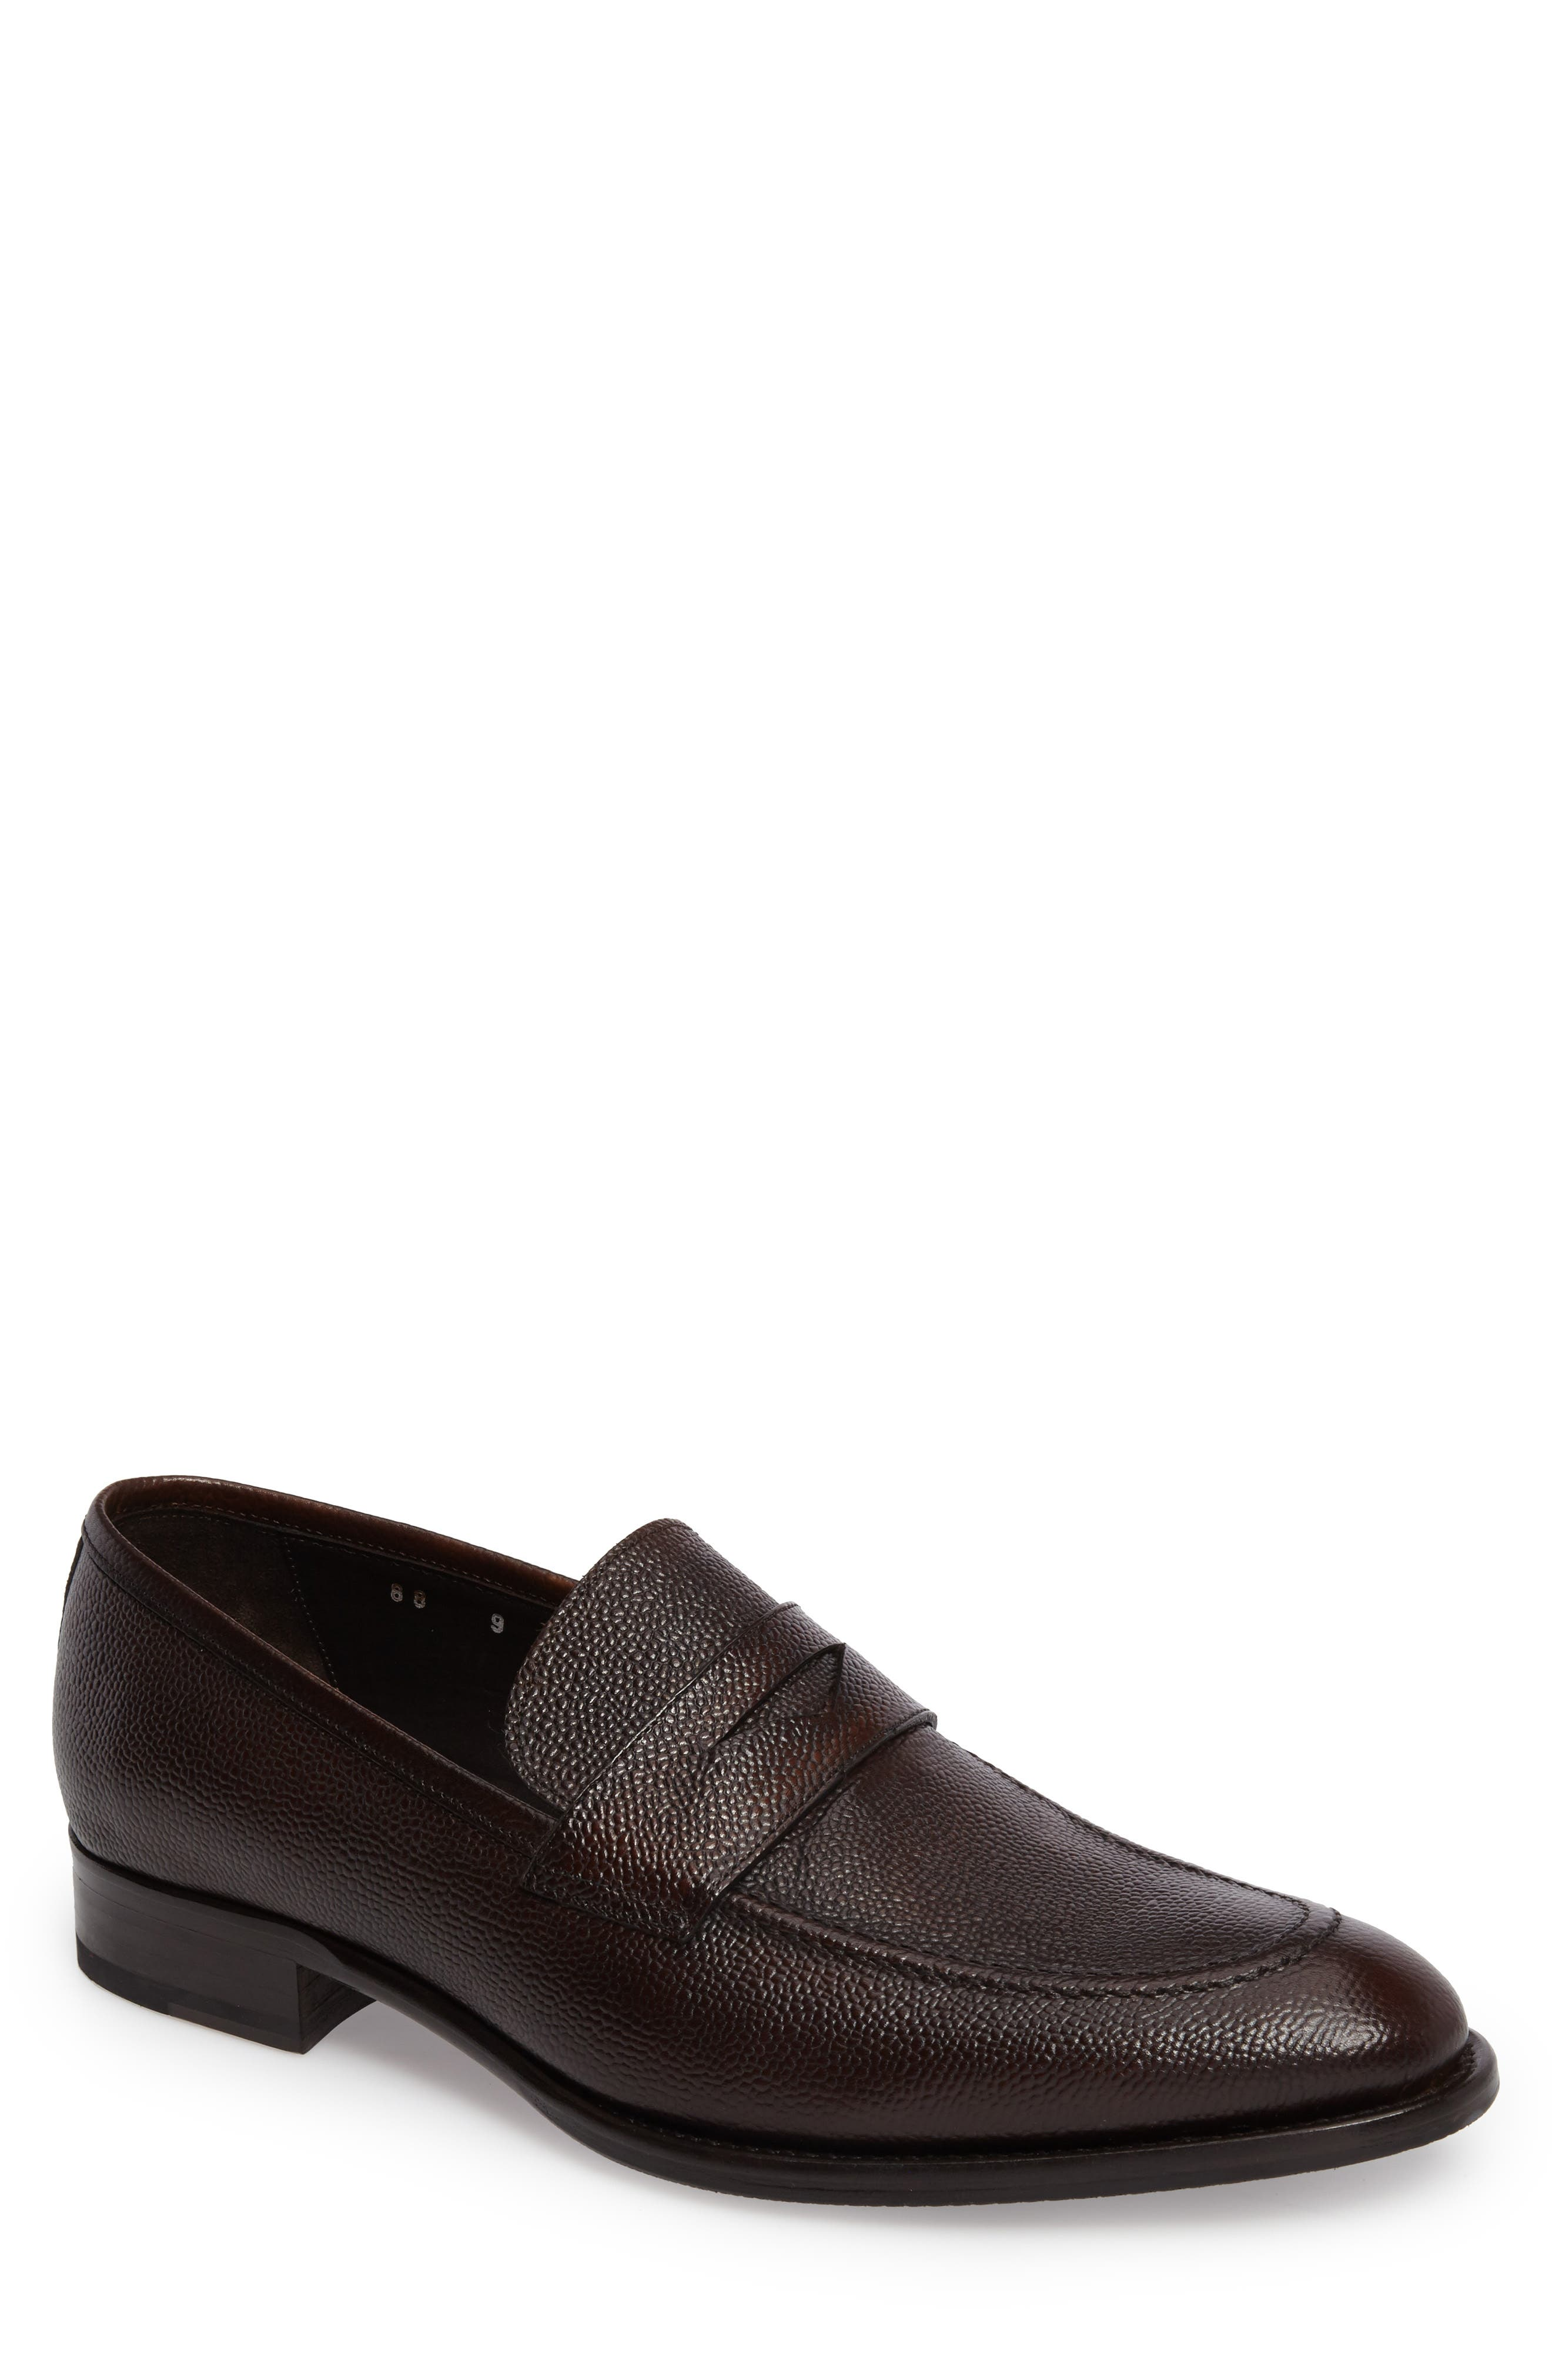 James Penny Loafer,                             Main thumbnail 1, color,                             200